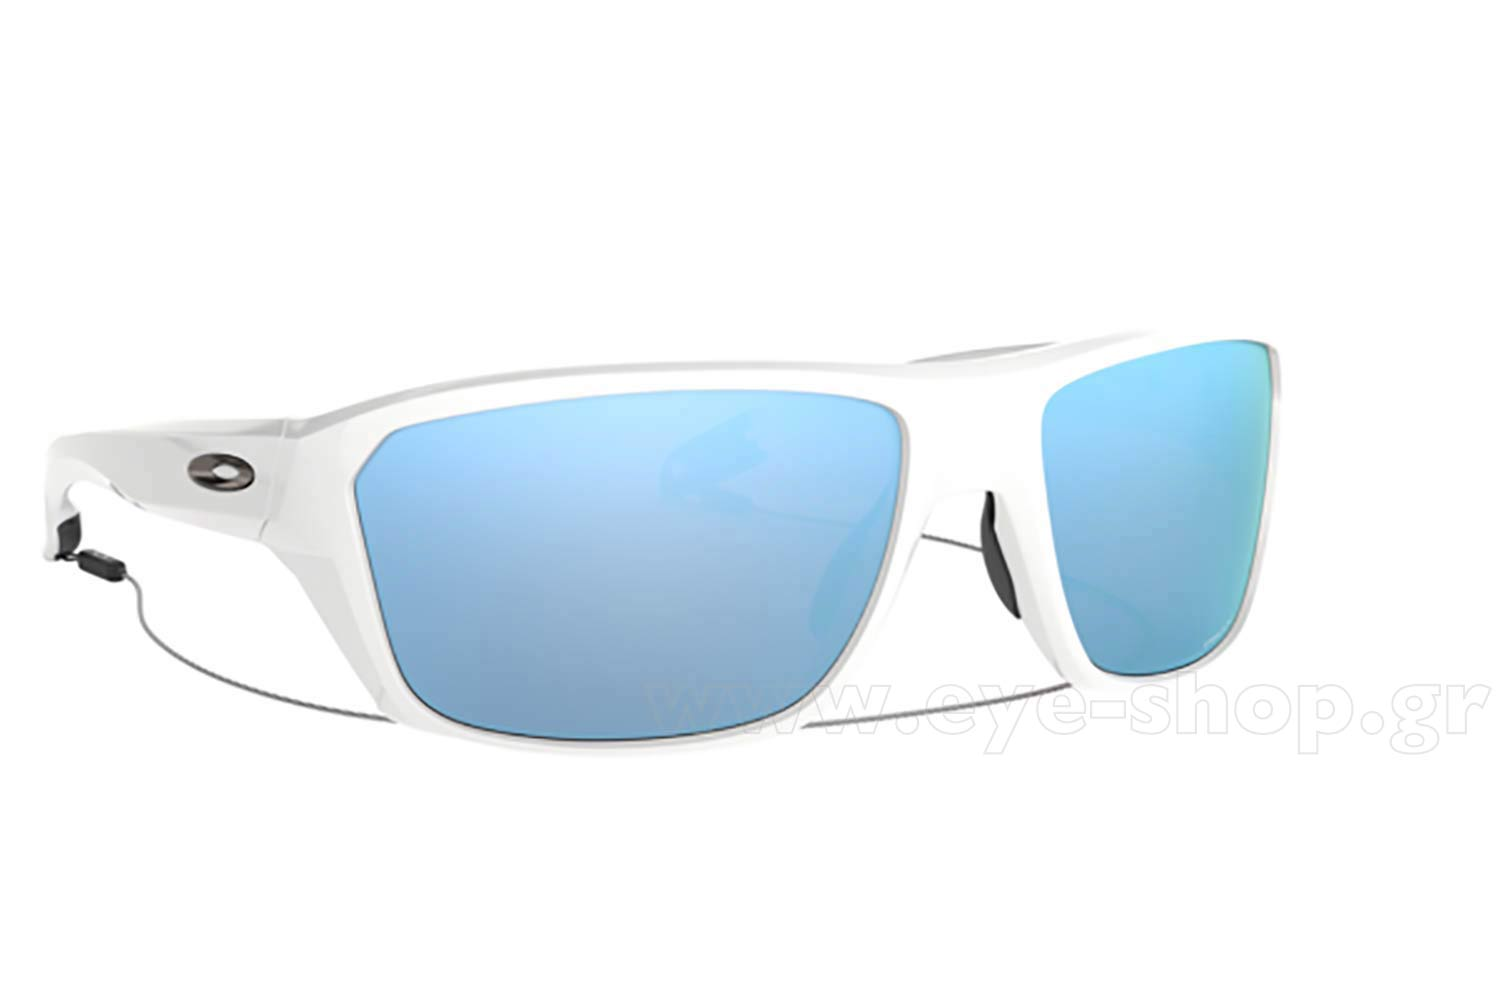 49a96599d8b5a SUNGLASSES Oakley Split Shot 9416 07 Prizm Deep Water Polarized